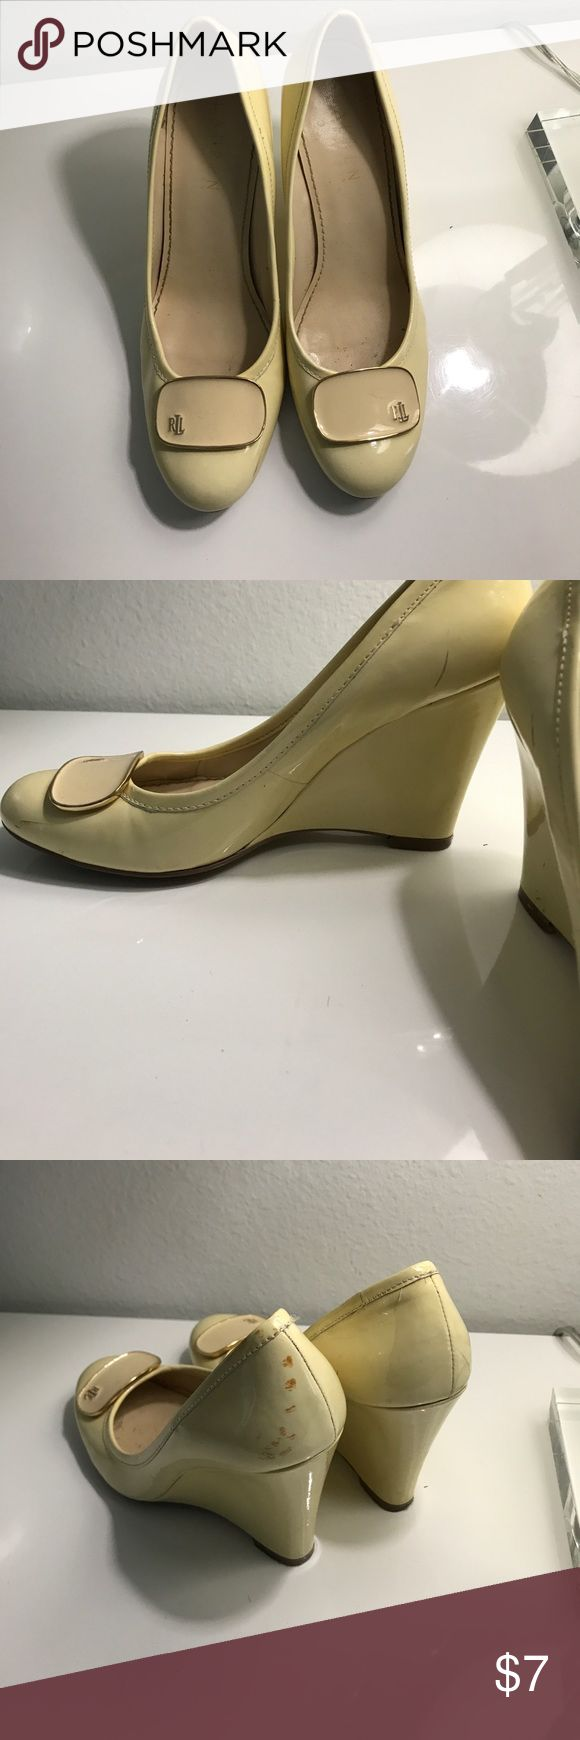 Ralp Lauren shoes Leather wedge shoes. Signs of wear. Lauren Ralph Lauren Shoes Wedges